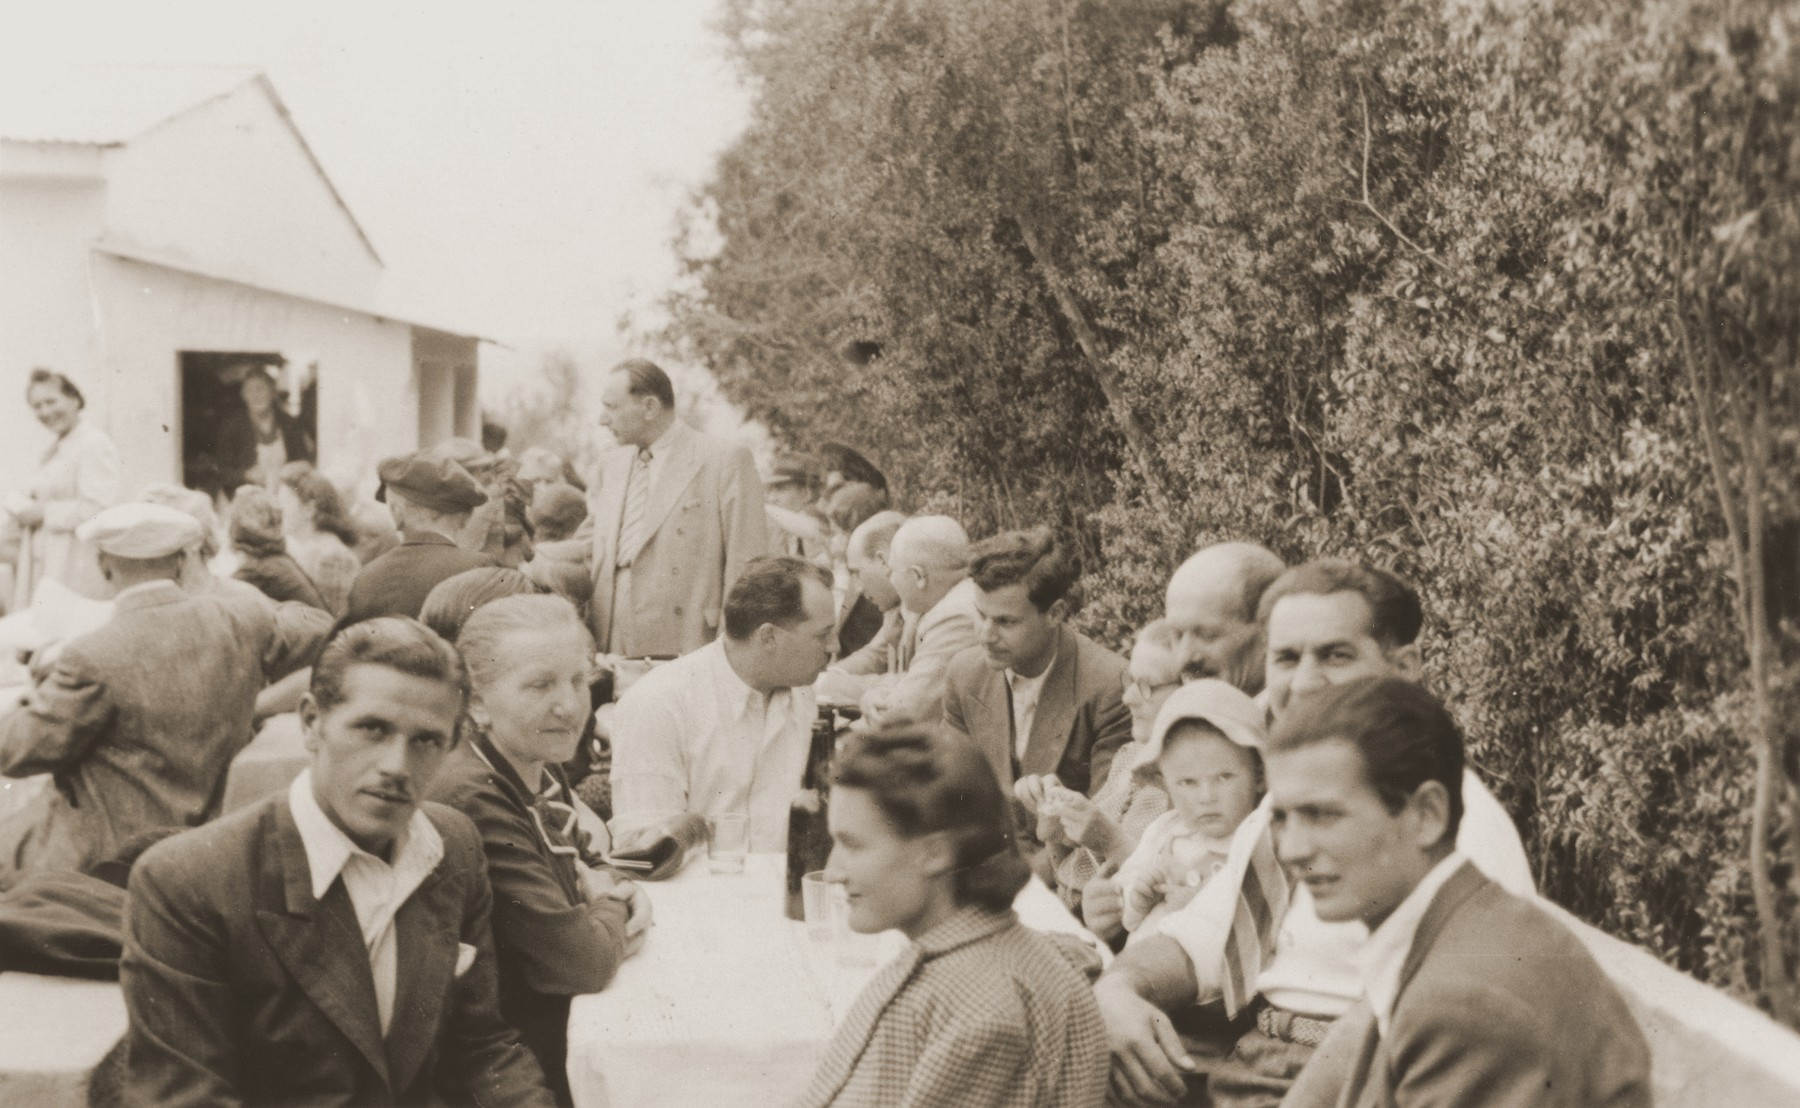 Austrian Jewish refugees in La Paz meet in a restaurant [Quinta Elma] to raise money for the victims of the Orazio shipwreck.  Among those pictured are Ferry Kohn (front, left); Lina Spitzer (behind Kohn); Rosie Spitzer (front, center); Julius Wolfinger (front, right); Eugen Spitzer (holding baby Leo); and Nathan Wolfinger (behind Leo).